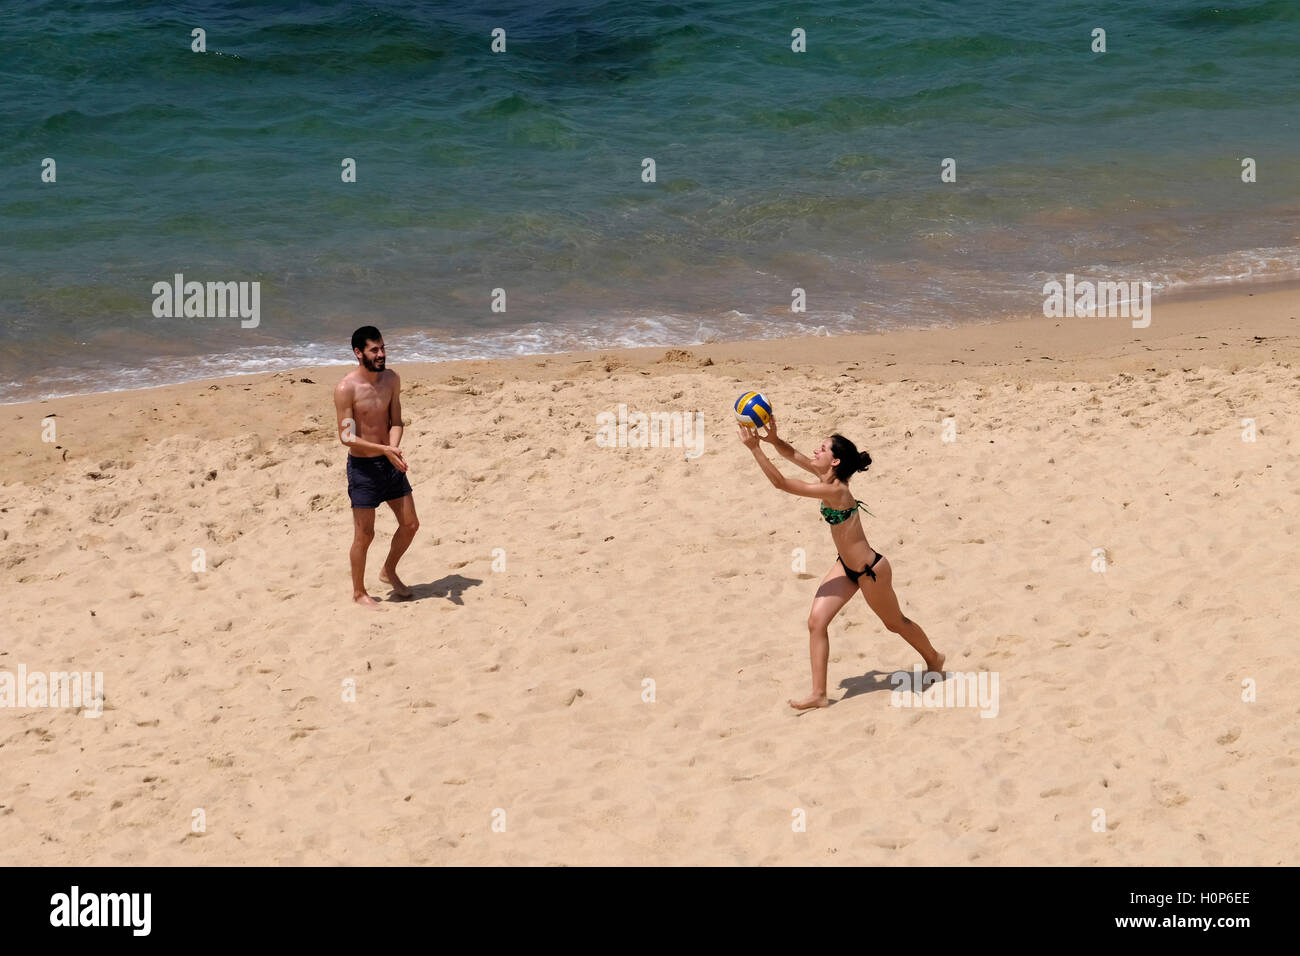 Overhead view of a young man and woman playing volleyball on the beach near the ocean - Stock Image